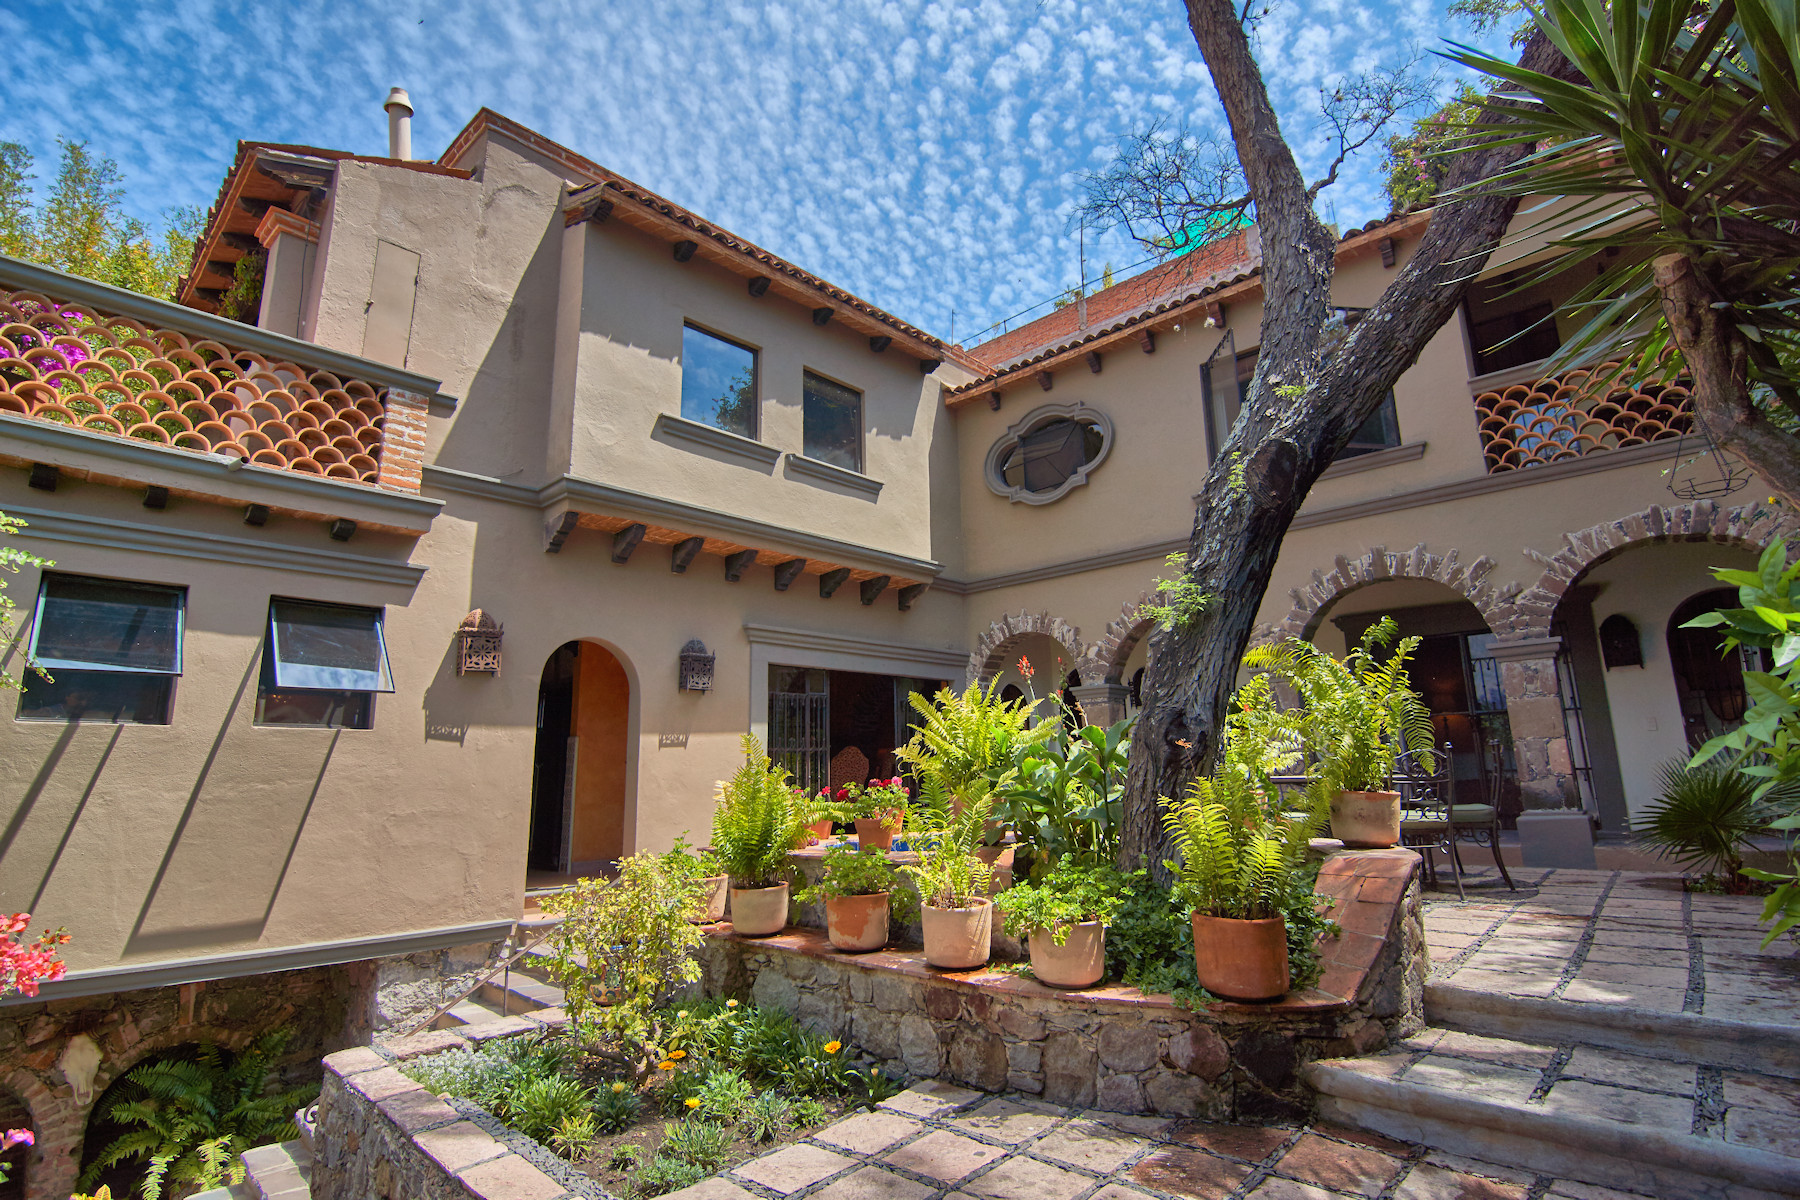 Single Family Home for Sale at Calle El Chorro San Miguel De Allende, Guanajuato, 37700 Mexico